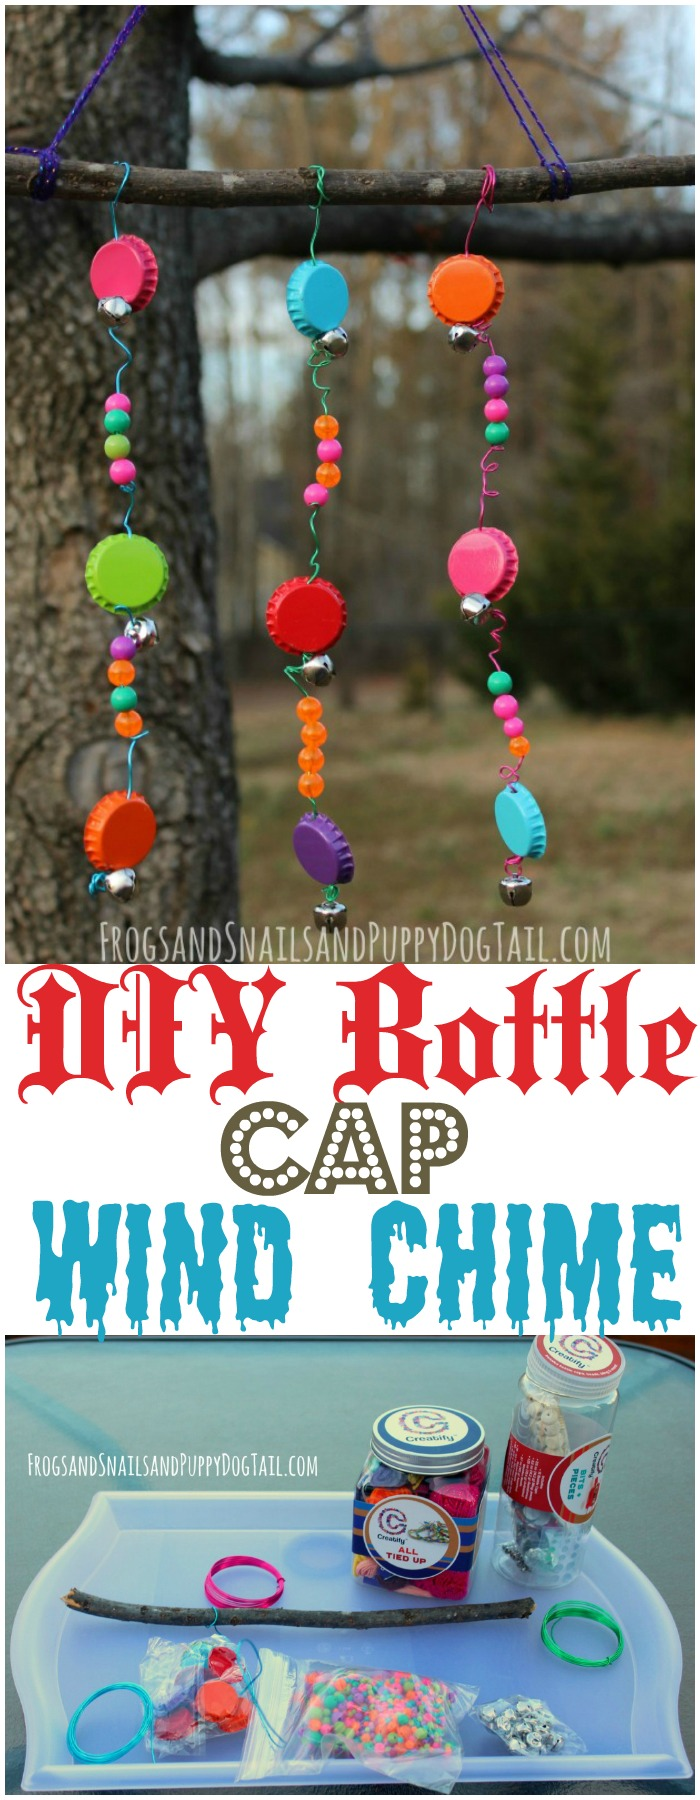 Outstanding DIY Wind Chimes Ideas To Make Your Home Marvelous DIY Bottle Cap Wind Chime